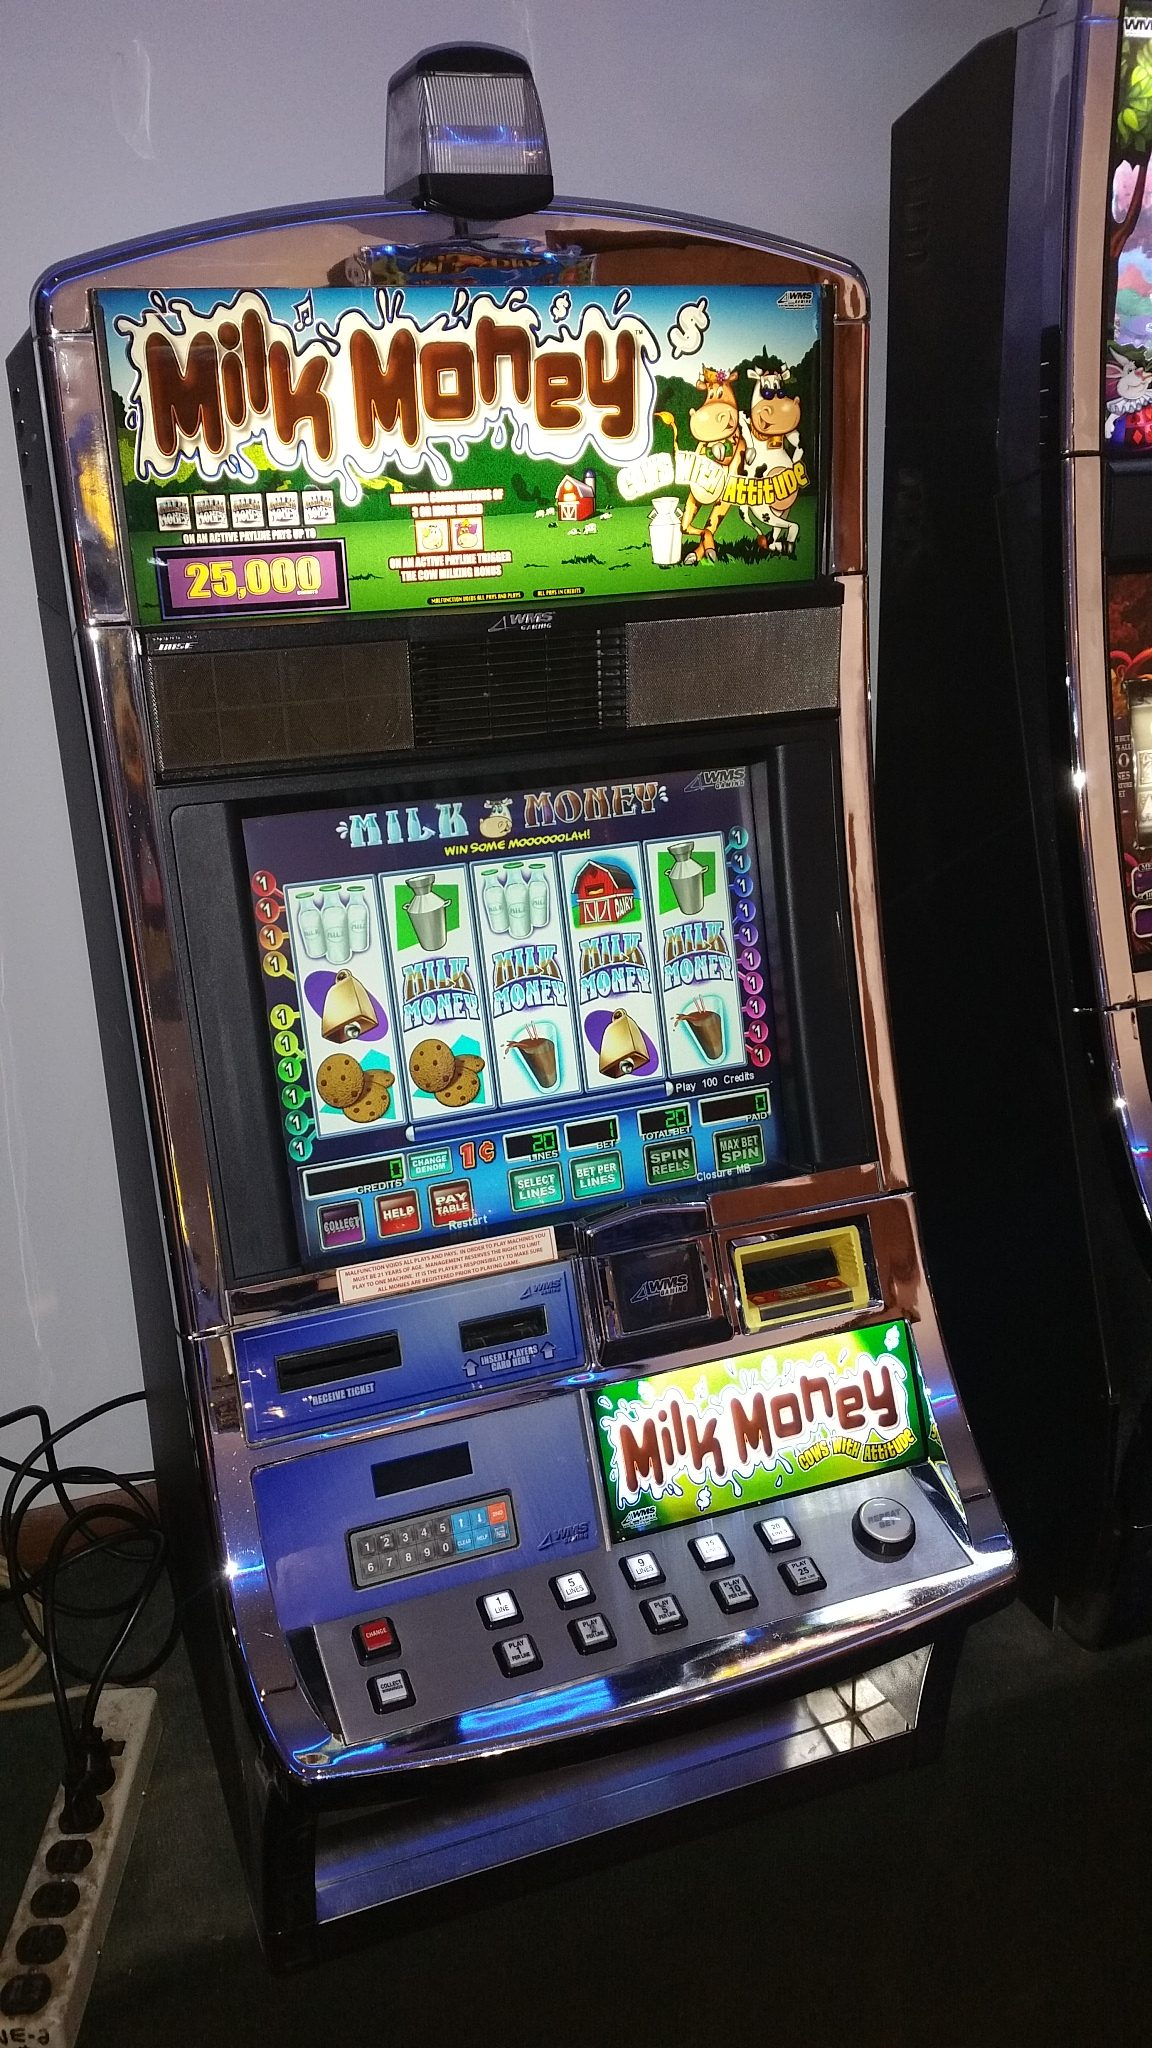 Wms Blue Bird I Milk Money Video Bonus Slot Machine Slot